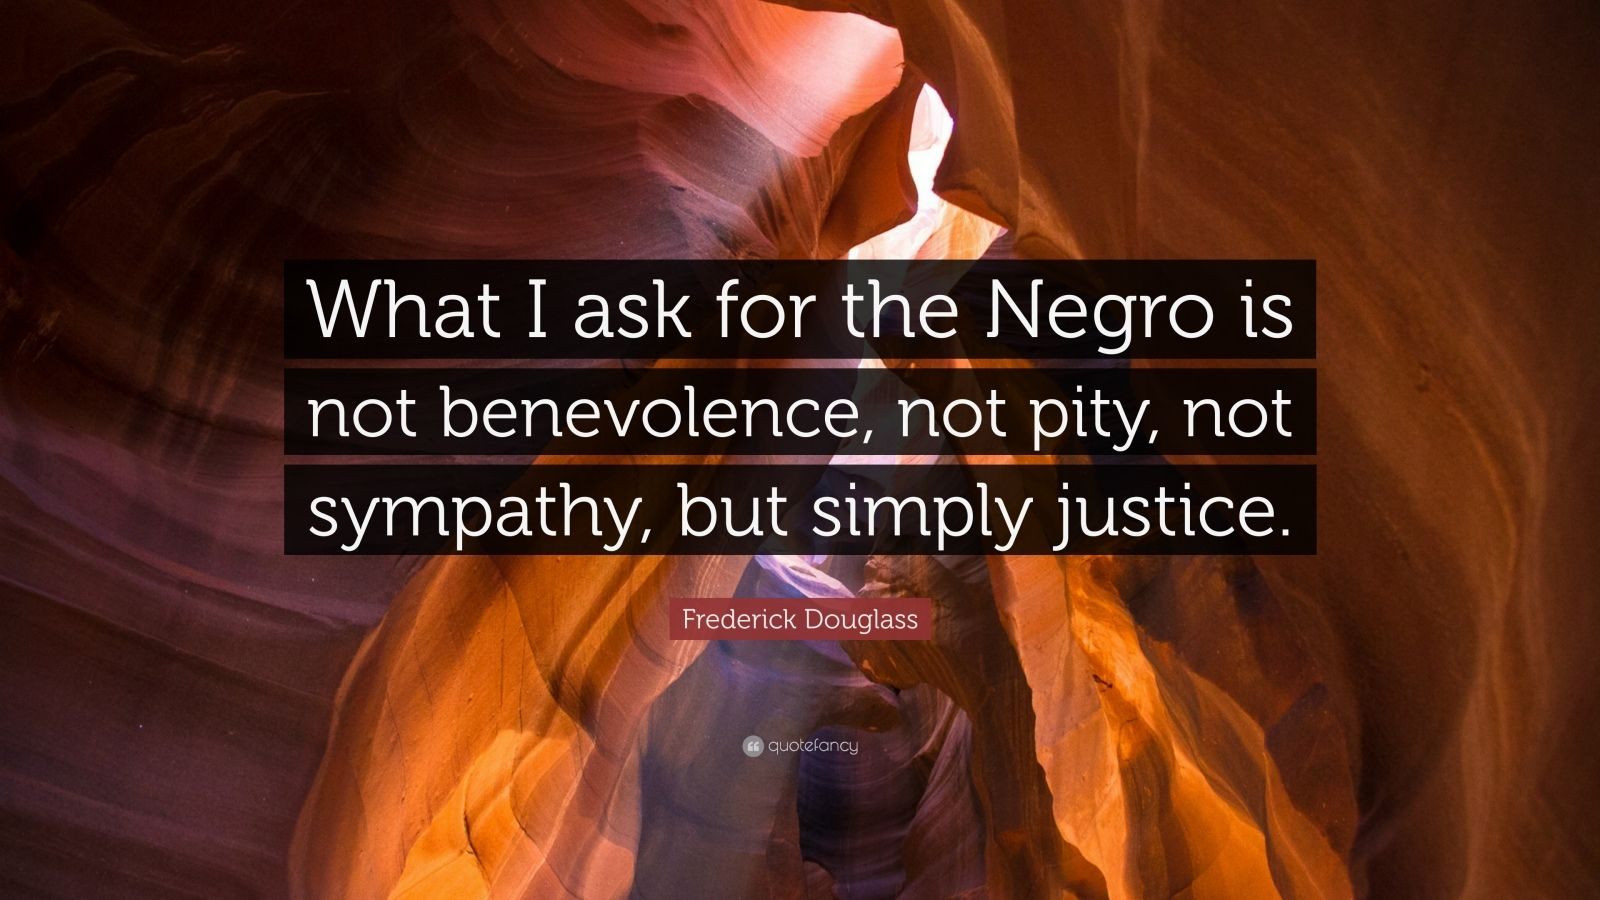 """Frederick Douglass Quote: """"What I ask for the Negro is not benevolence, not pity, not sympathy, but simply justice."""""""